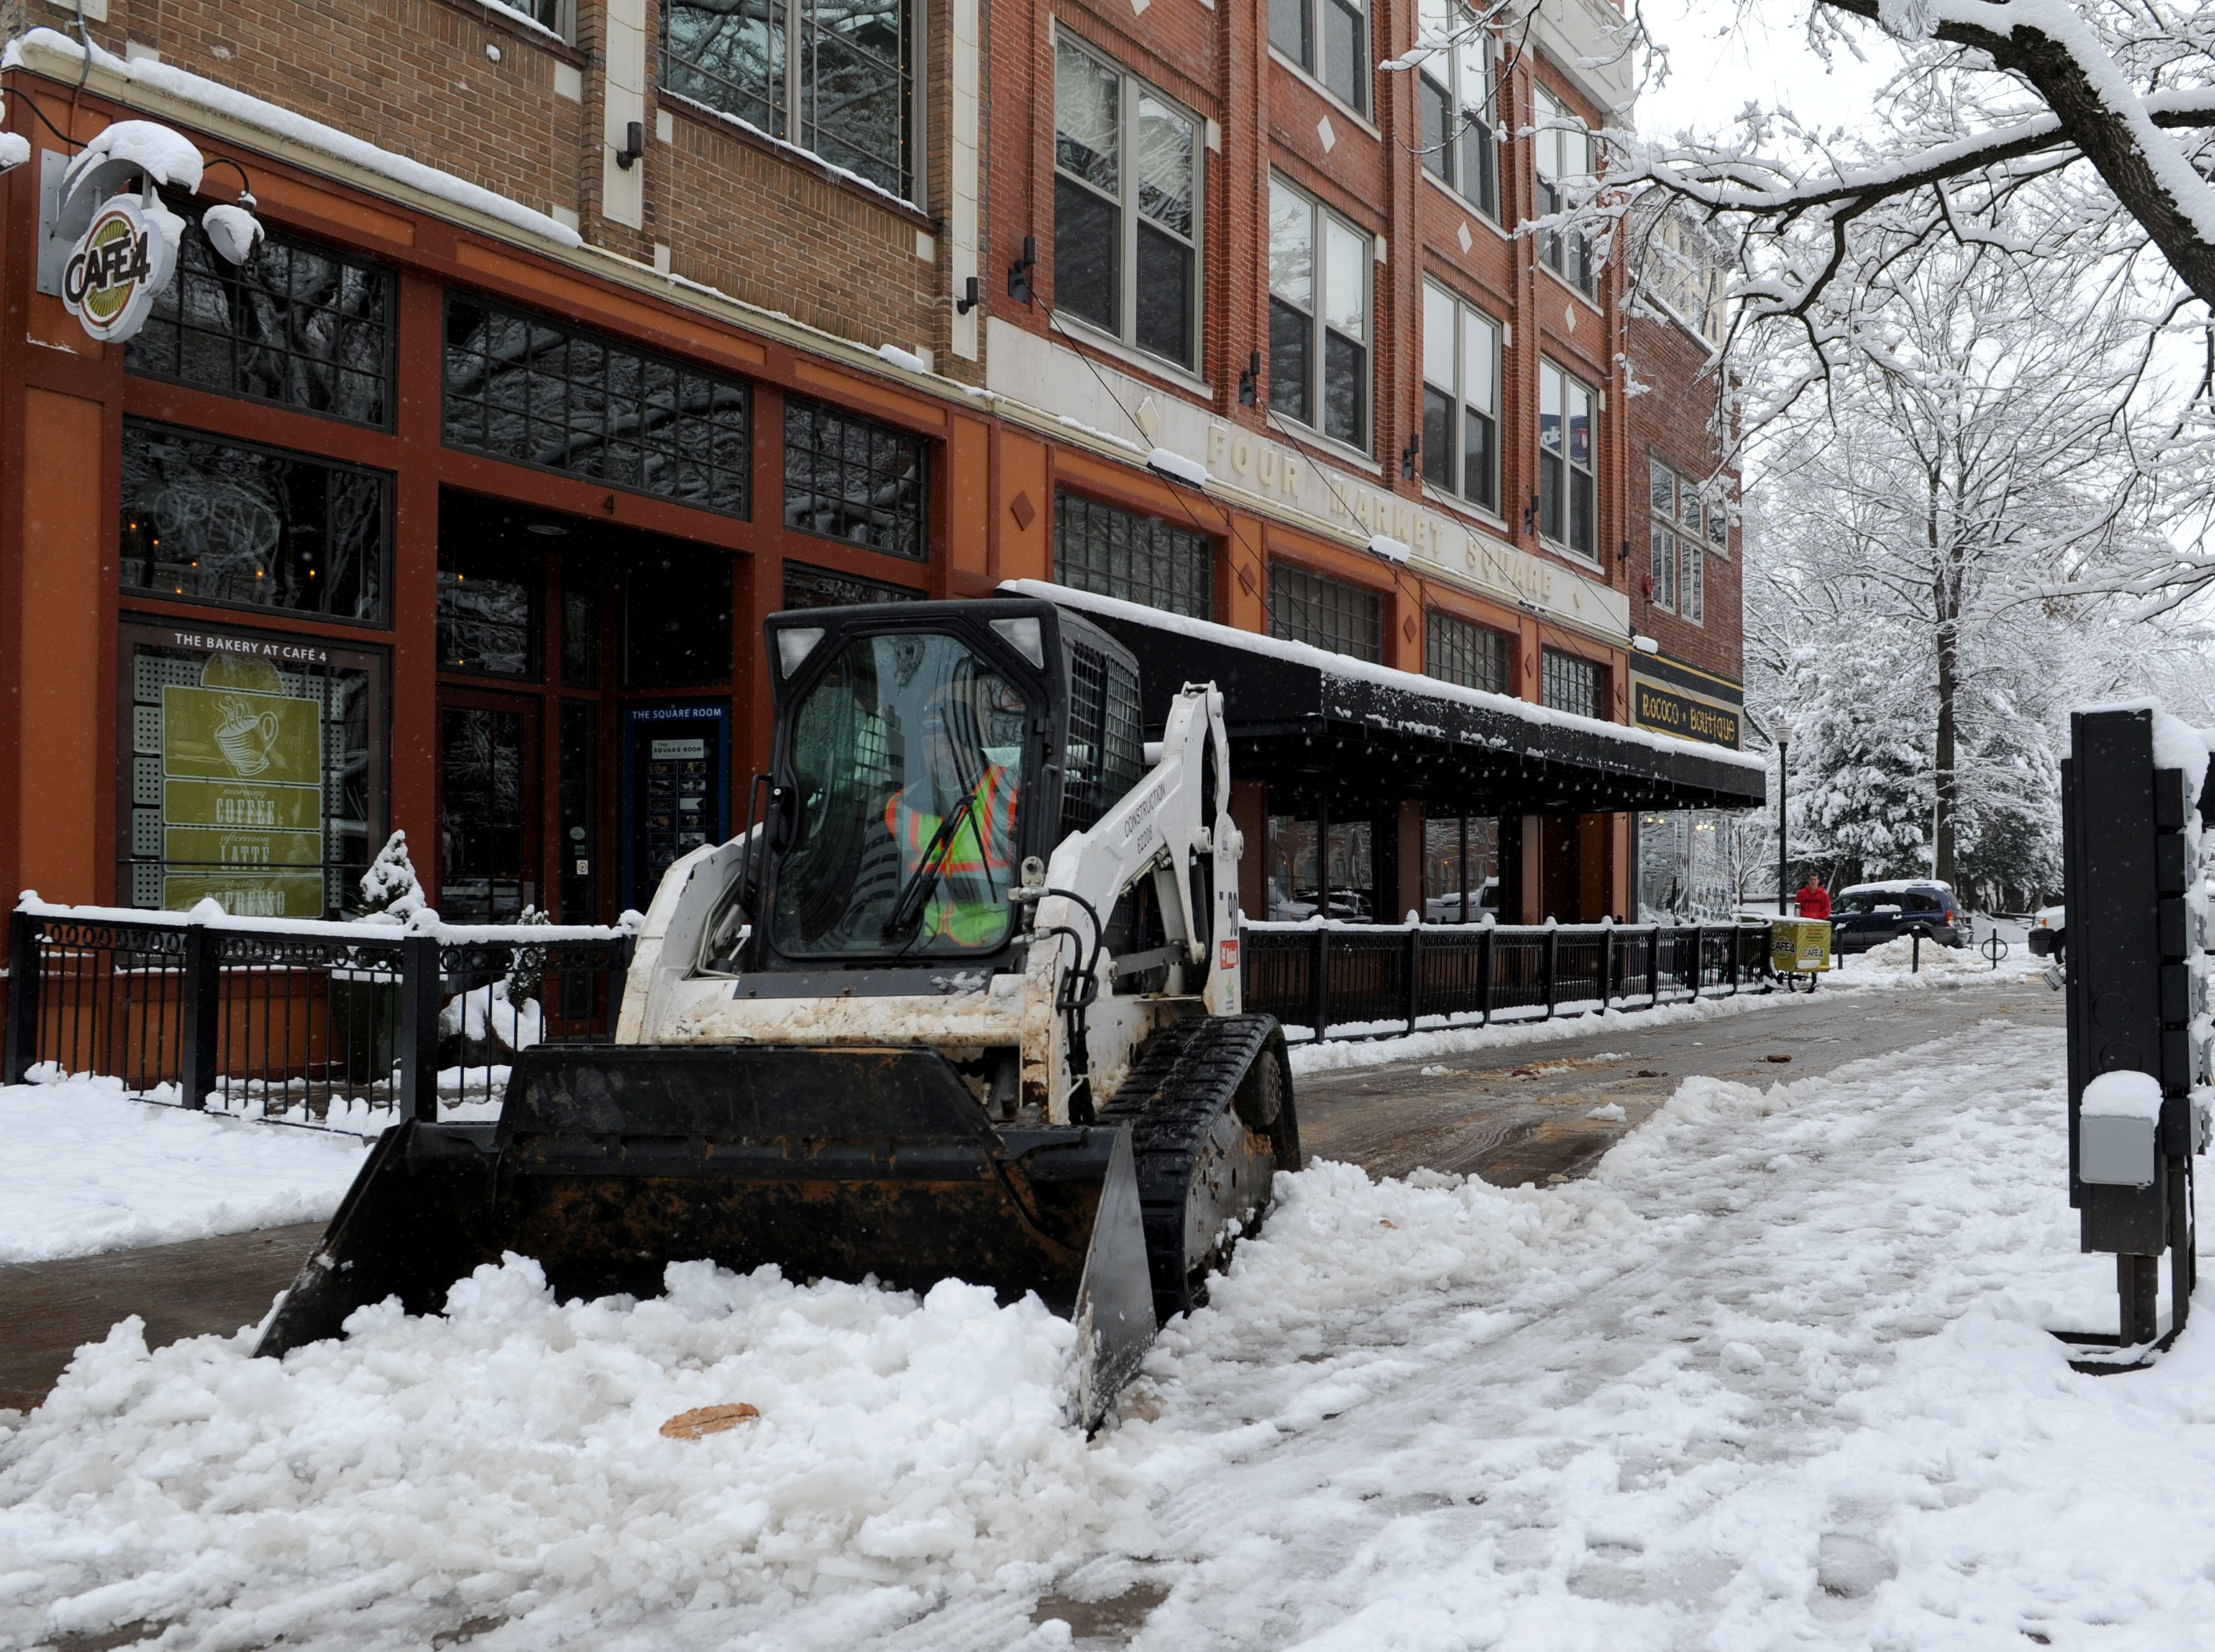 City of Knoxville public grounds maintenance workers use machinery to remove snow from sidewalks in Market Square in downtown Knoxville on Thursday, Feb. 13, 2014. The winter storm on Wednesday brought six inches of snow to the Knoxville area. (AMY SMOTHERMAN BURGESS/NEWS SENTINEL)